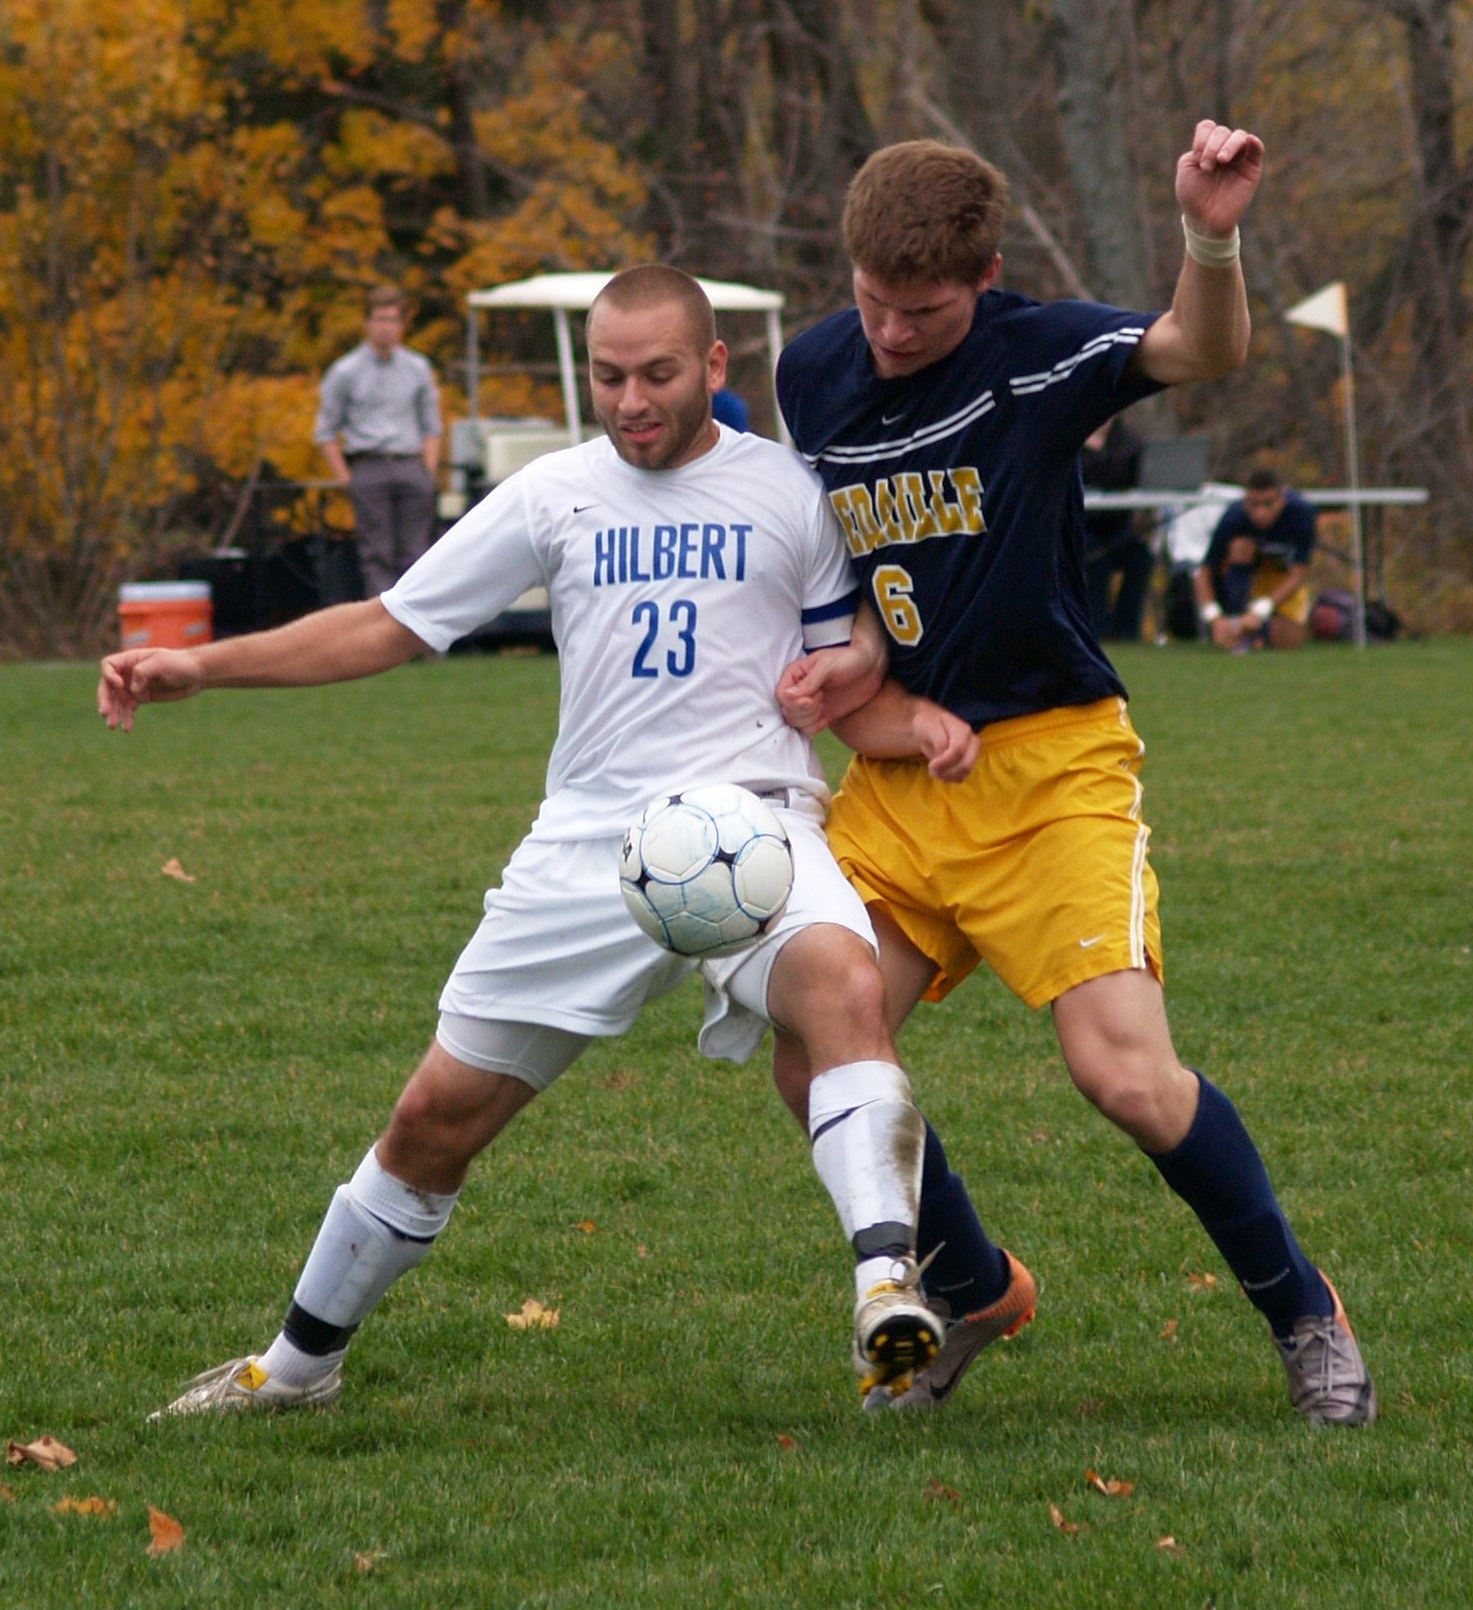 hilbert single men Steubenville – the barons tied a program single-game goal record as the franciscan men's soccer team rolled by hilbert, 8-2, in the amcc opener for both teams, saturday.